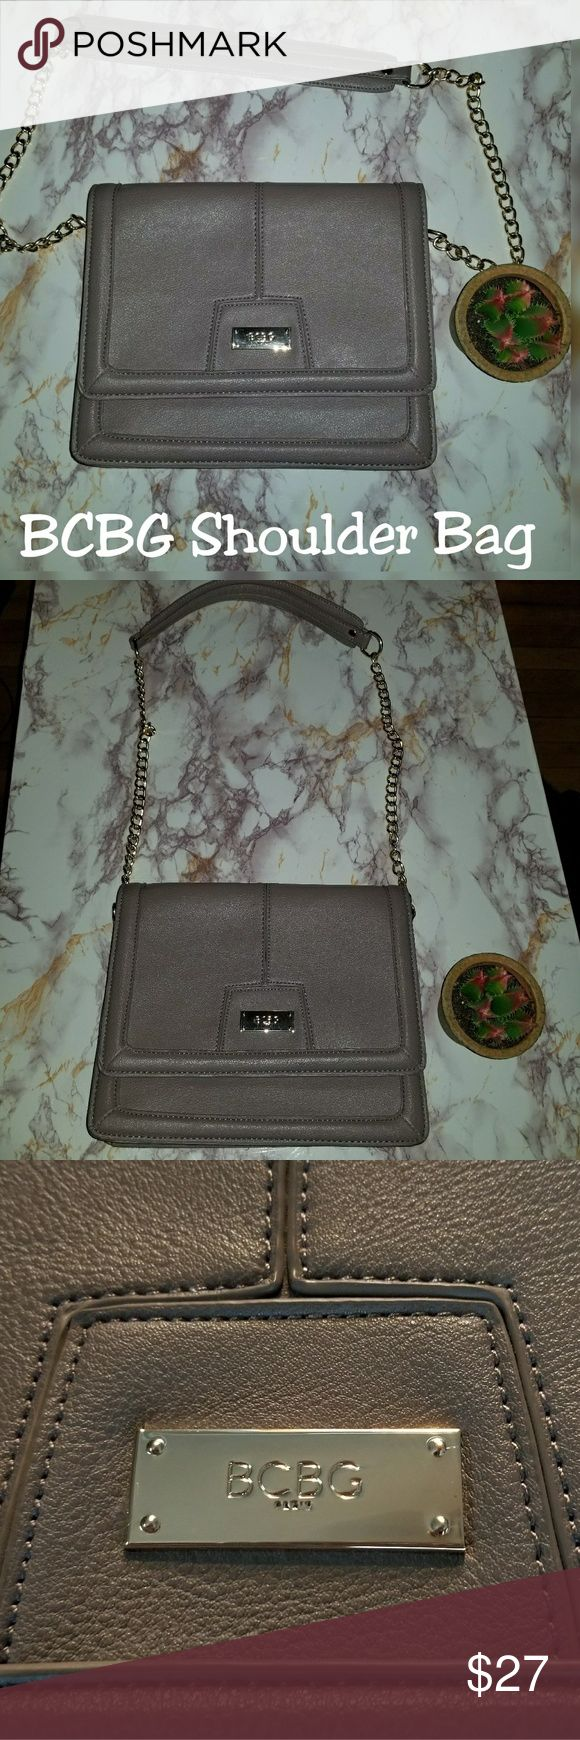 Purse from BCBG Paris Brand New! Structured handbag with gold chain strap. Perfect Condition!  Beautiful stitching. BCBG Paris logo on flap. soft pvc material on shoulder strap for comfort. Taupe color. Flap top with center gold logo plate & magnetic closure.  Has a gold chainlink with leather comfort strap.   Interior is clean with 2 compartments, a zip pocket and 2 slip pockets.  New without tags.   $129 Original Price BCBG Bags Shoulder Bags